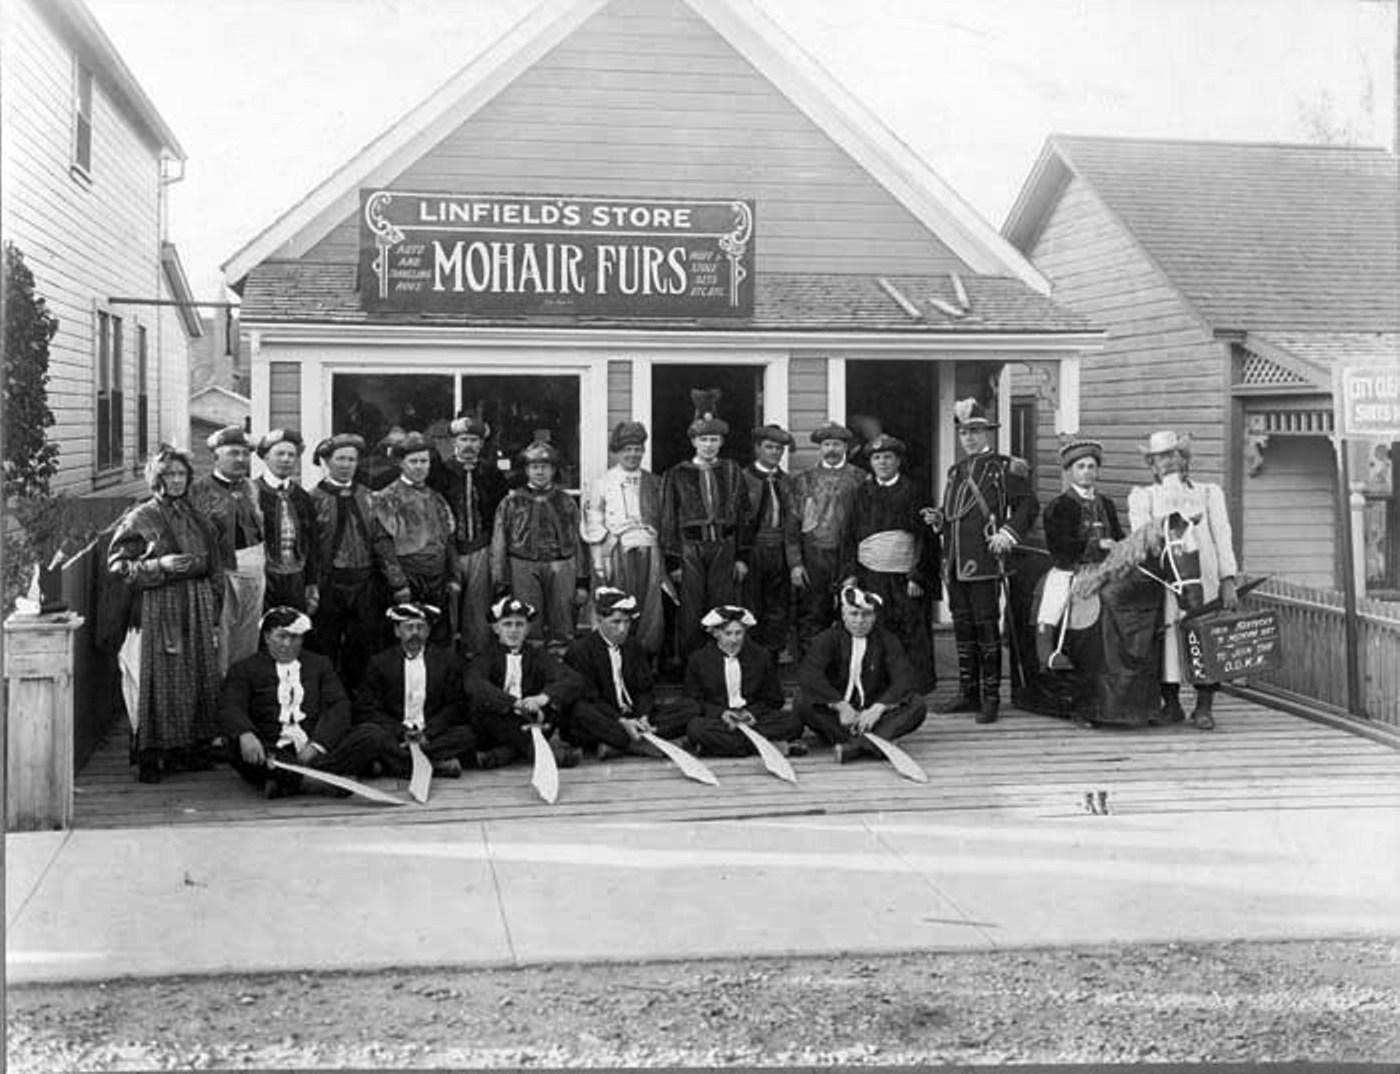 Linfield's Store, Medicine Hat c. 1914, soon after their arrival